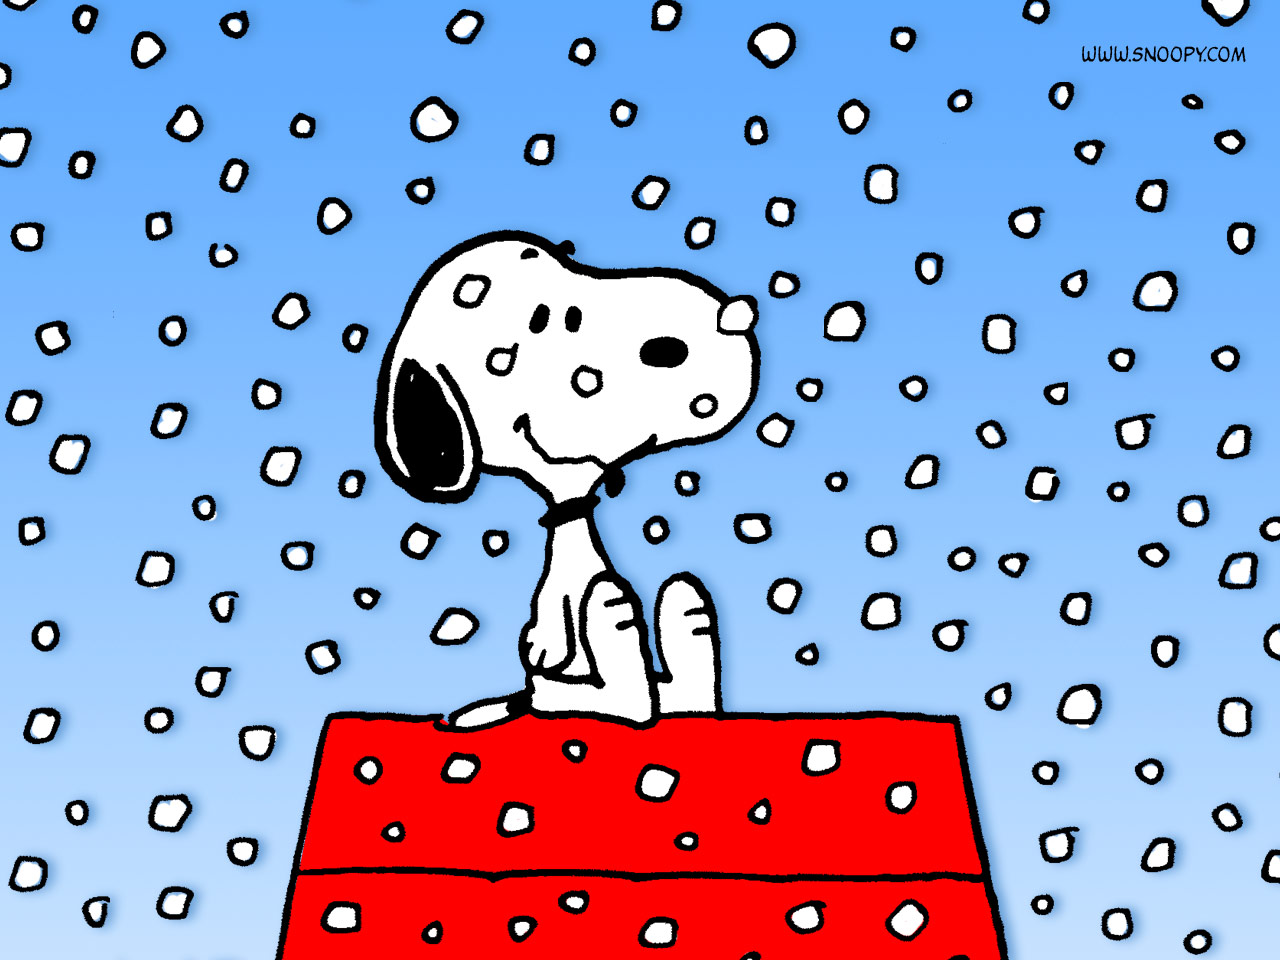 snoopy winter wallpaper   group picture image by tag 1280x960